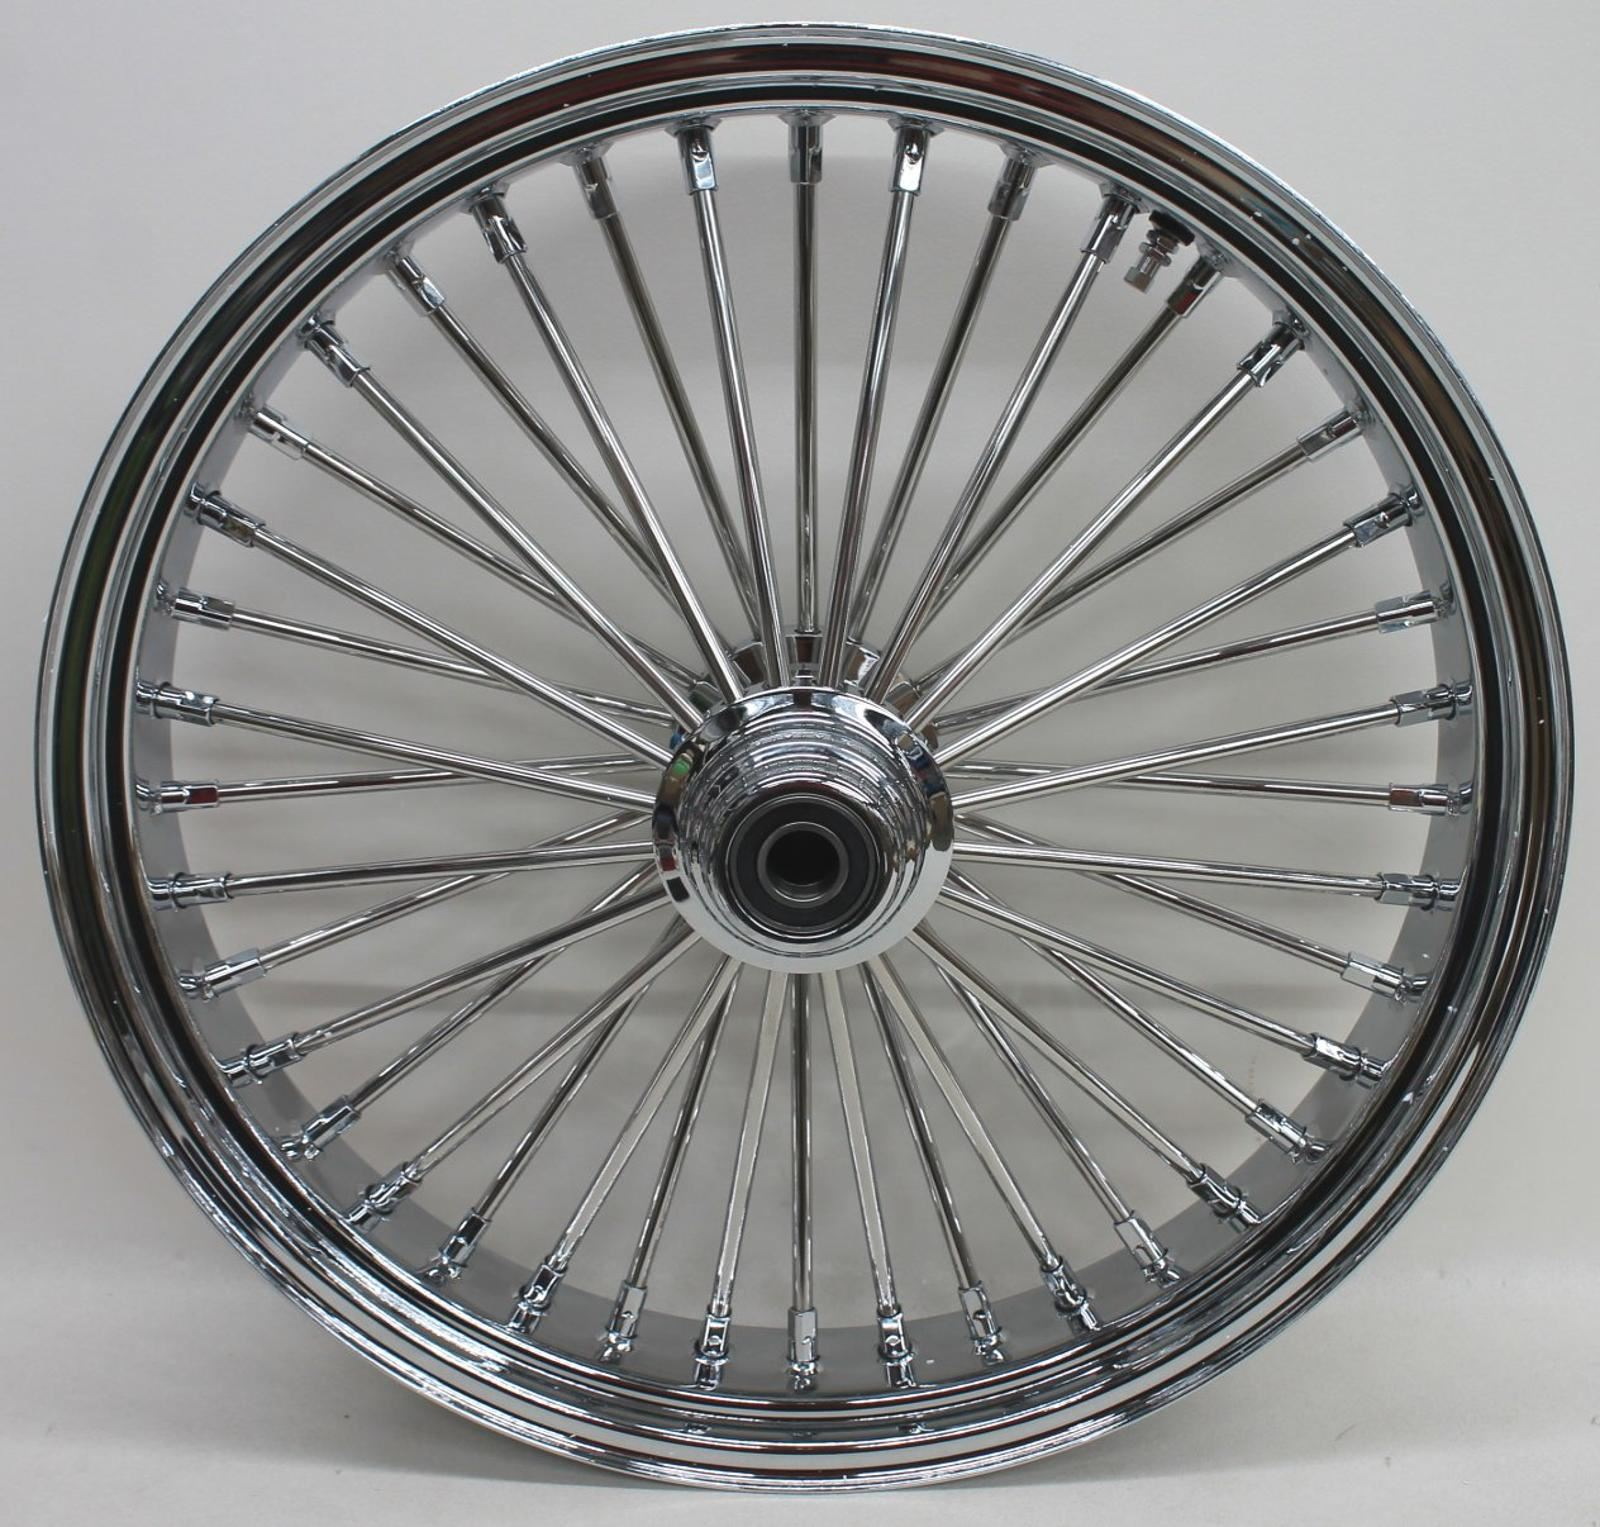 21x3.5 Fat Spoke Front Wheel For Harley Flt Touring Baggers 00-07 New